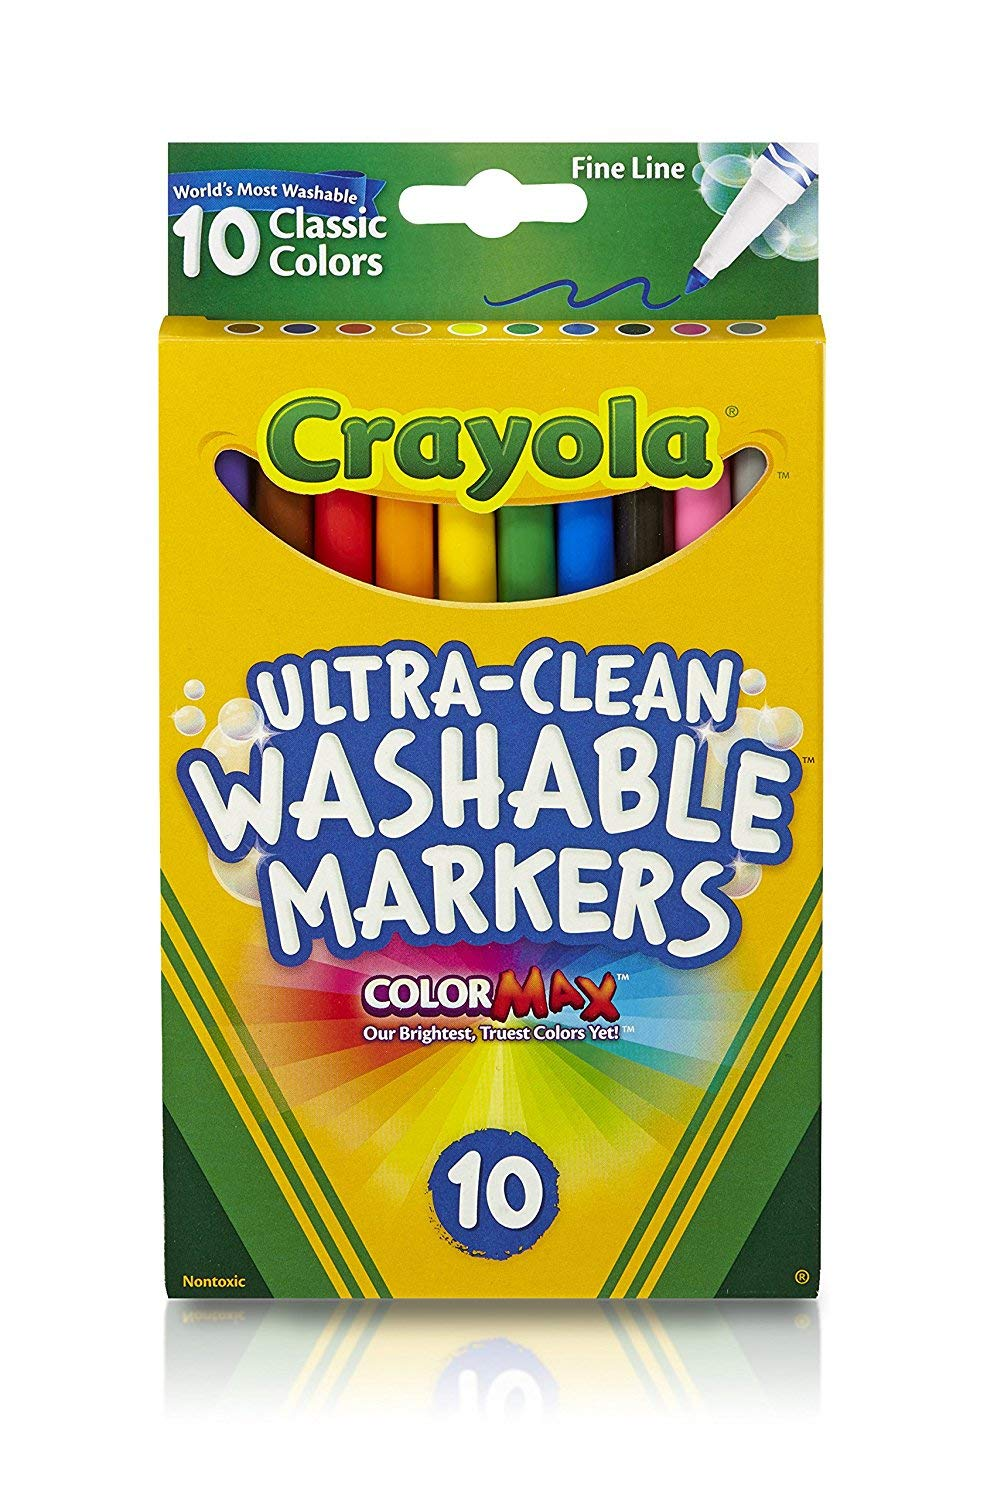 Crayola Ultraclean Fineline Classic Markers 3-Pack 10 Count